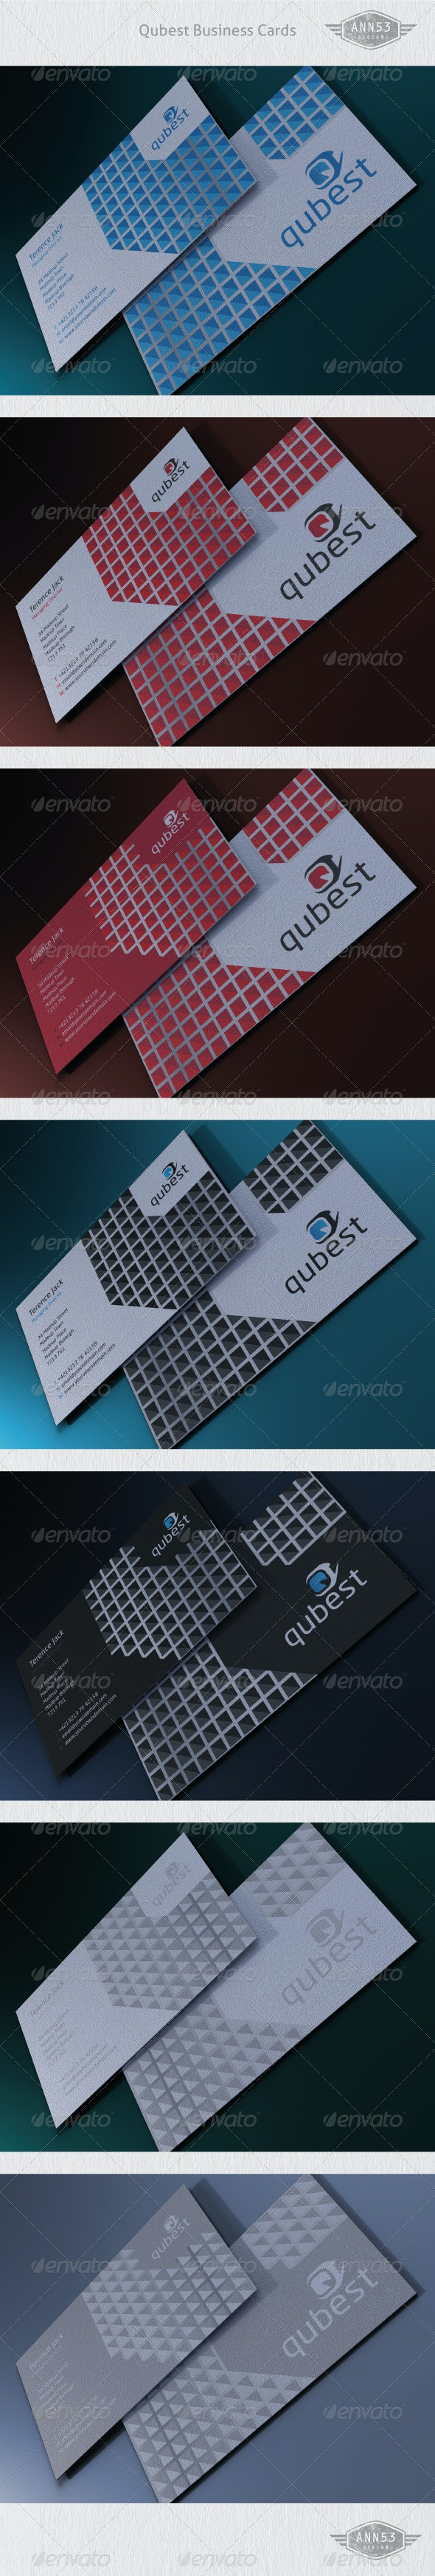 Qubestr Business Card Package - Corporate Business Cards